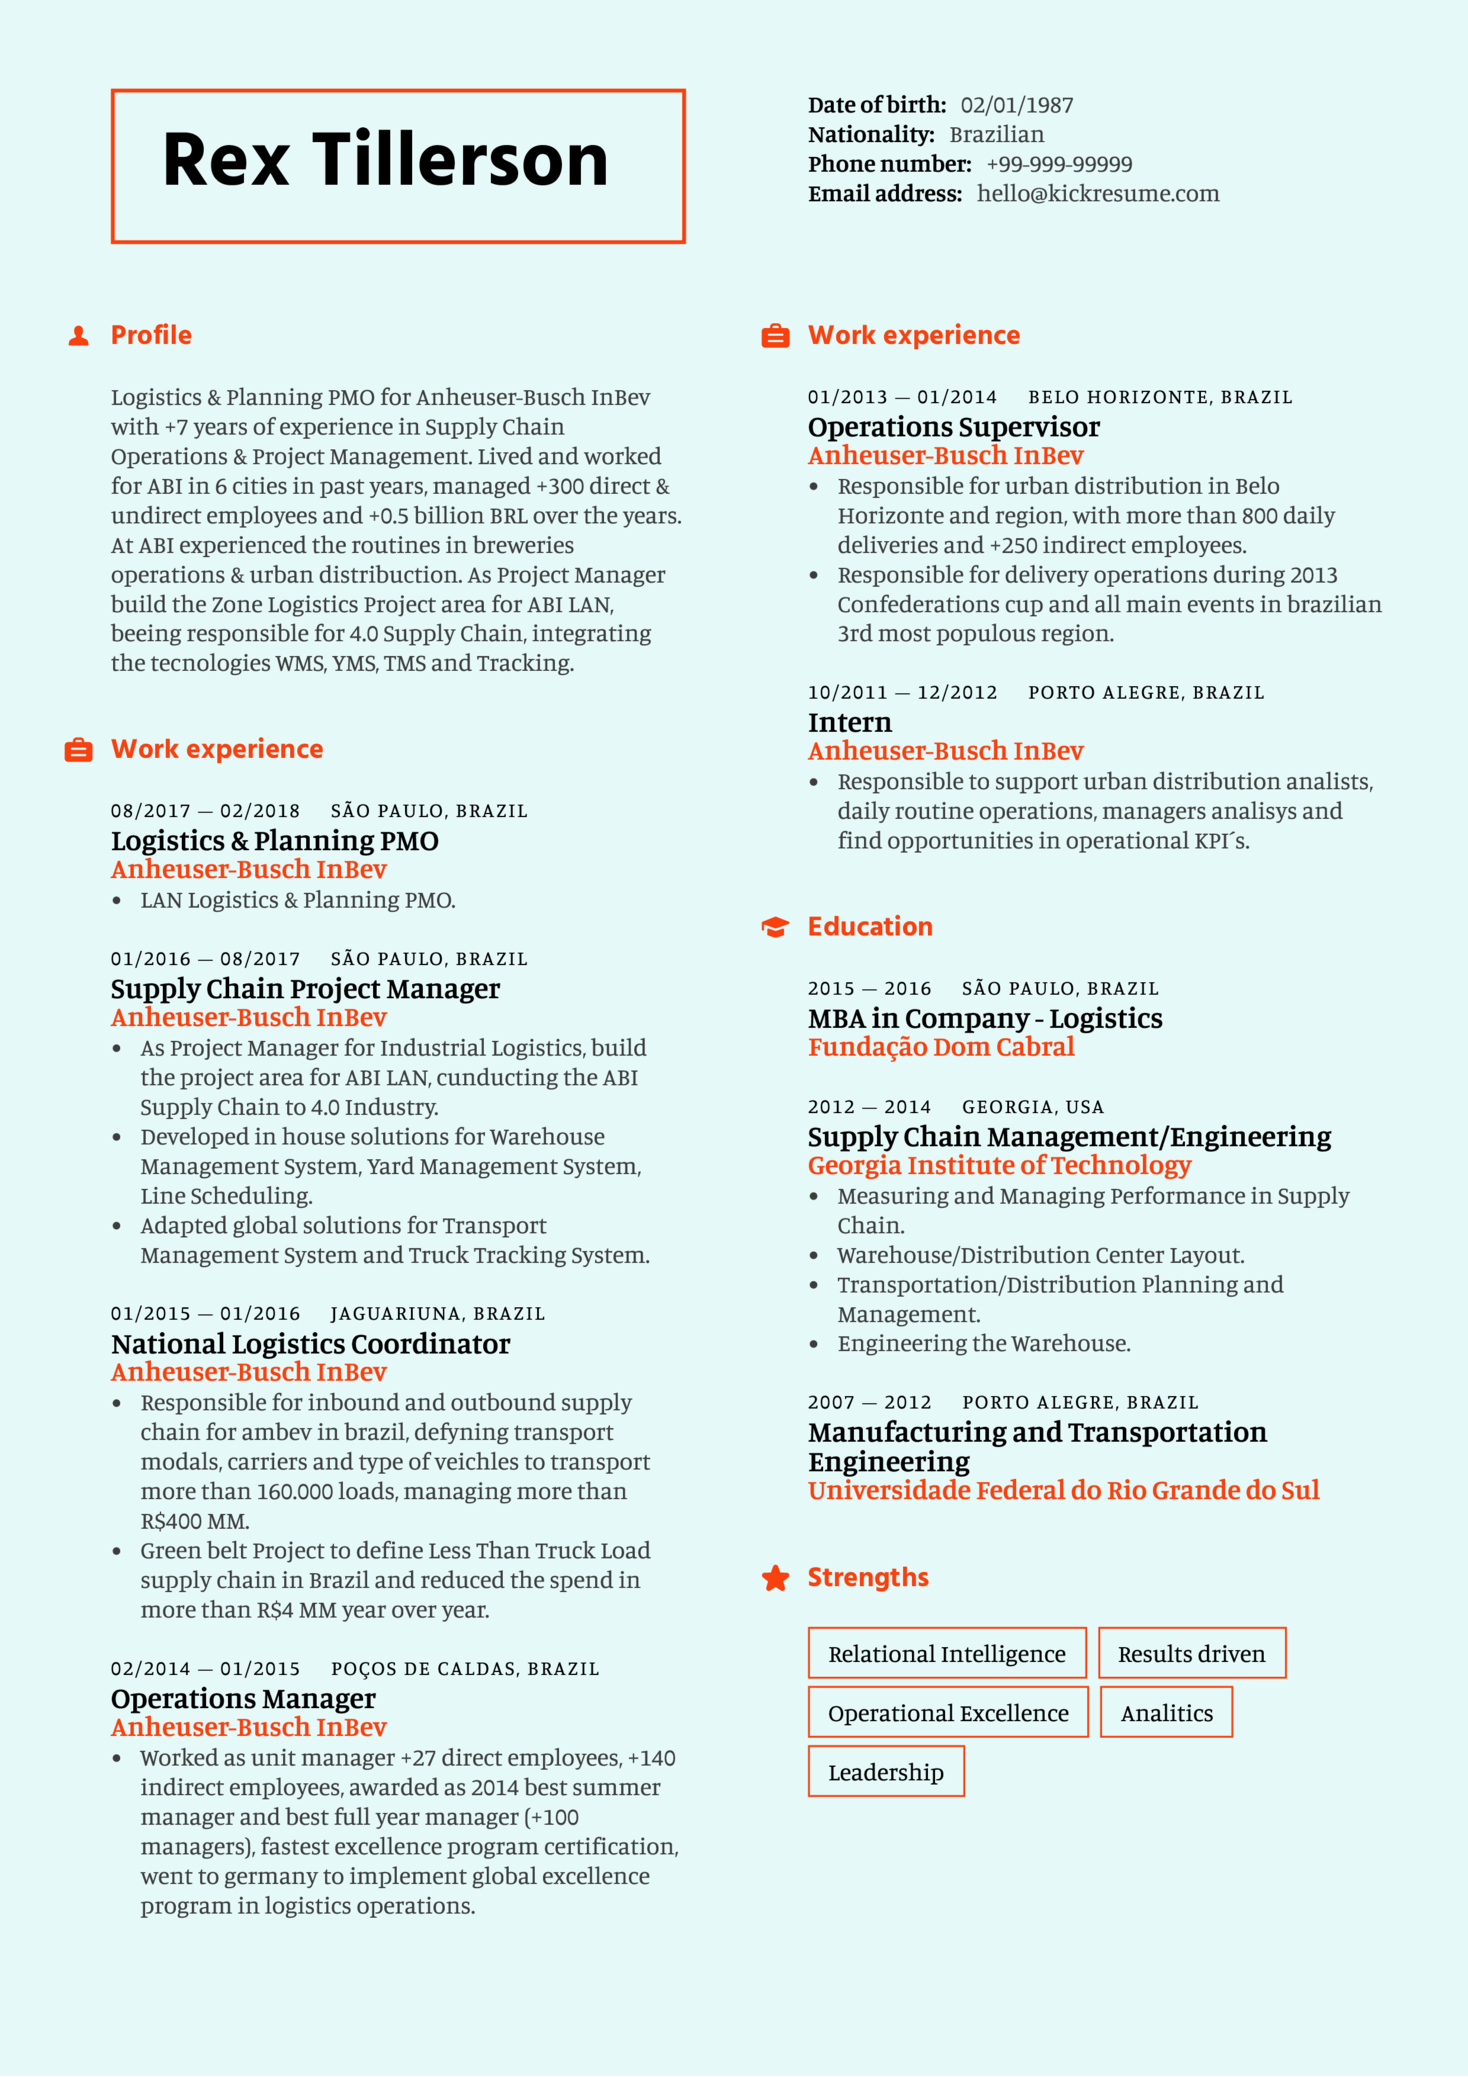 Supply Chain Project Manager Resume Sample (Part 1)